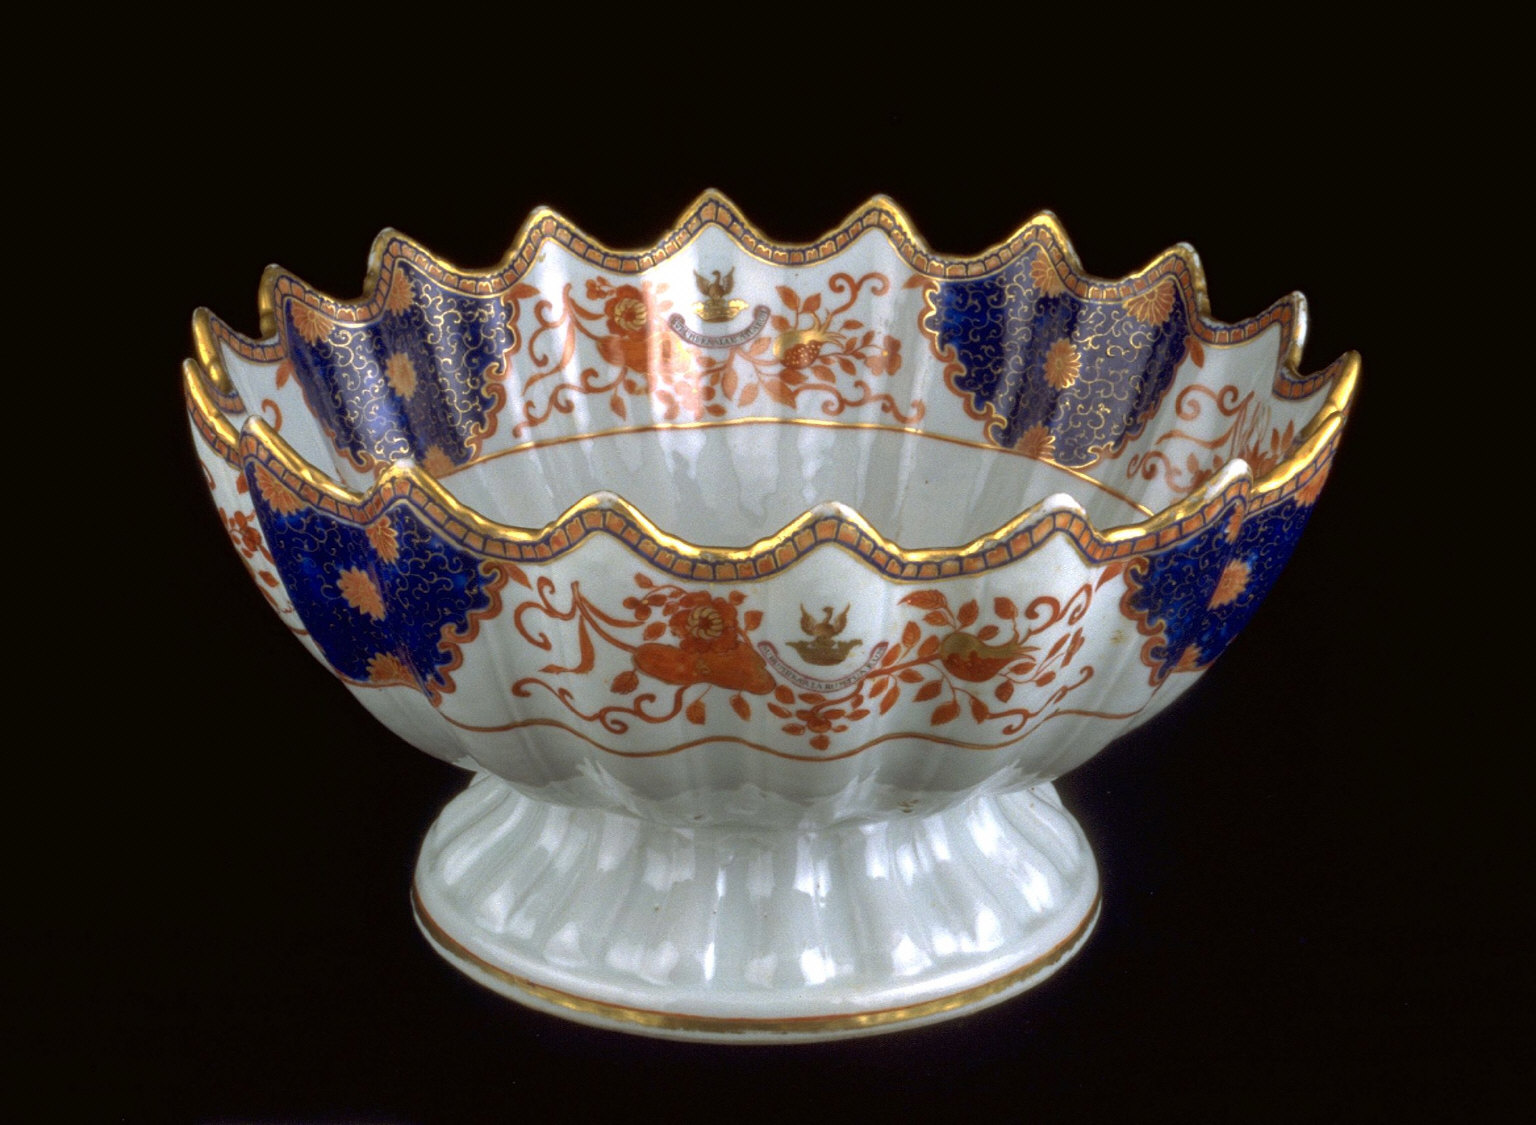 Punch bowl with crest of Sir Joseph Williamson